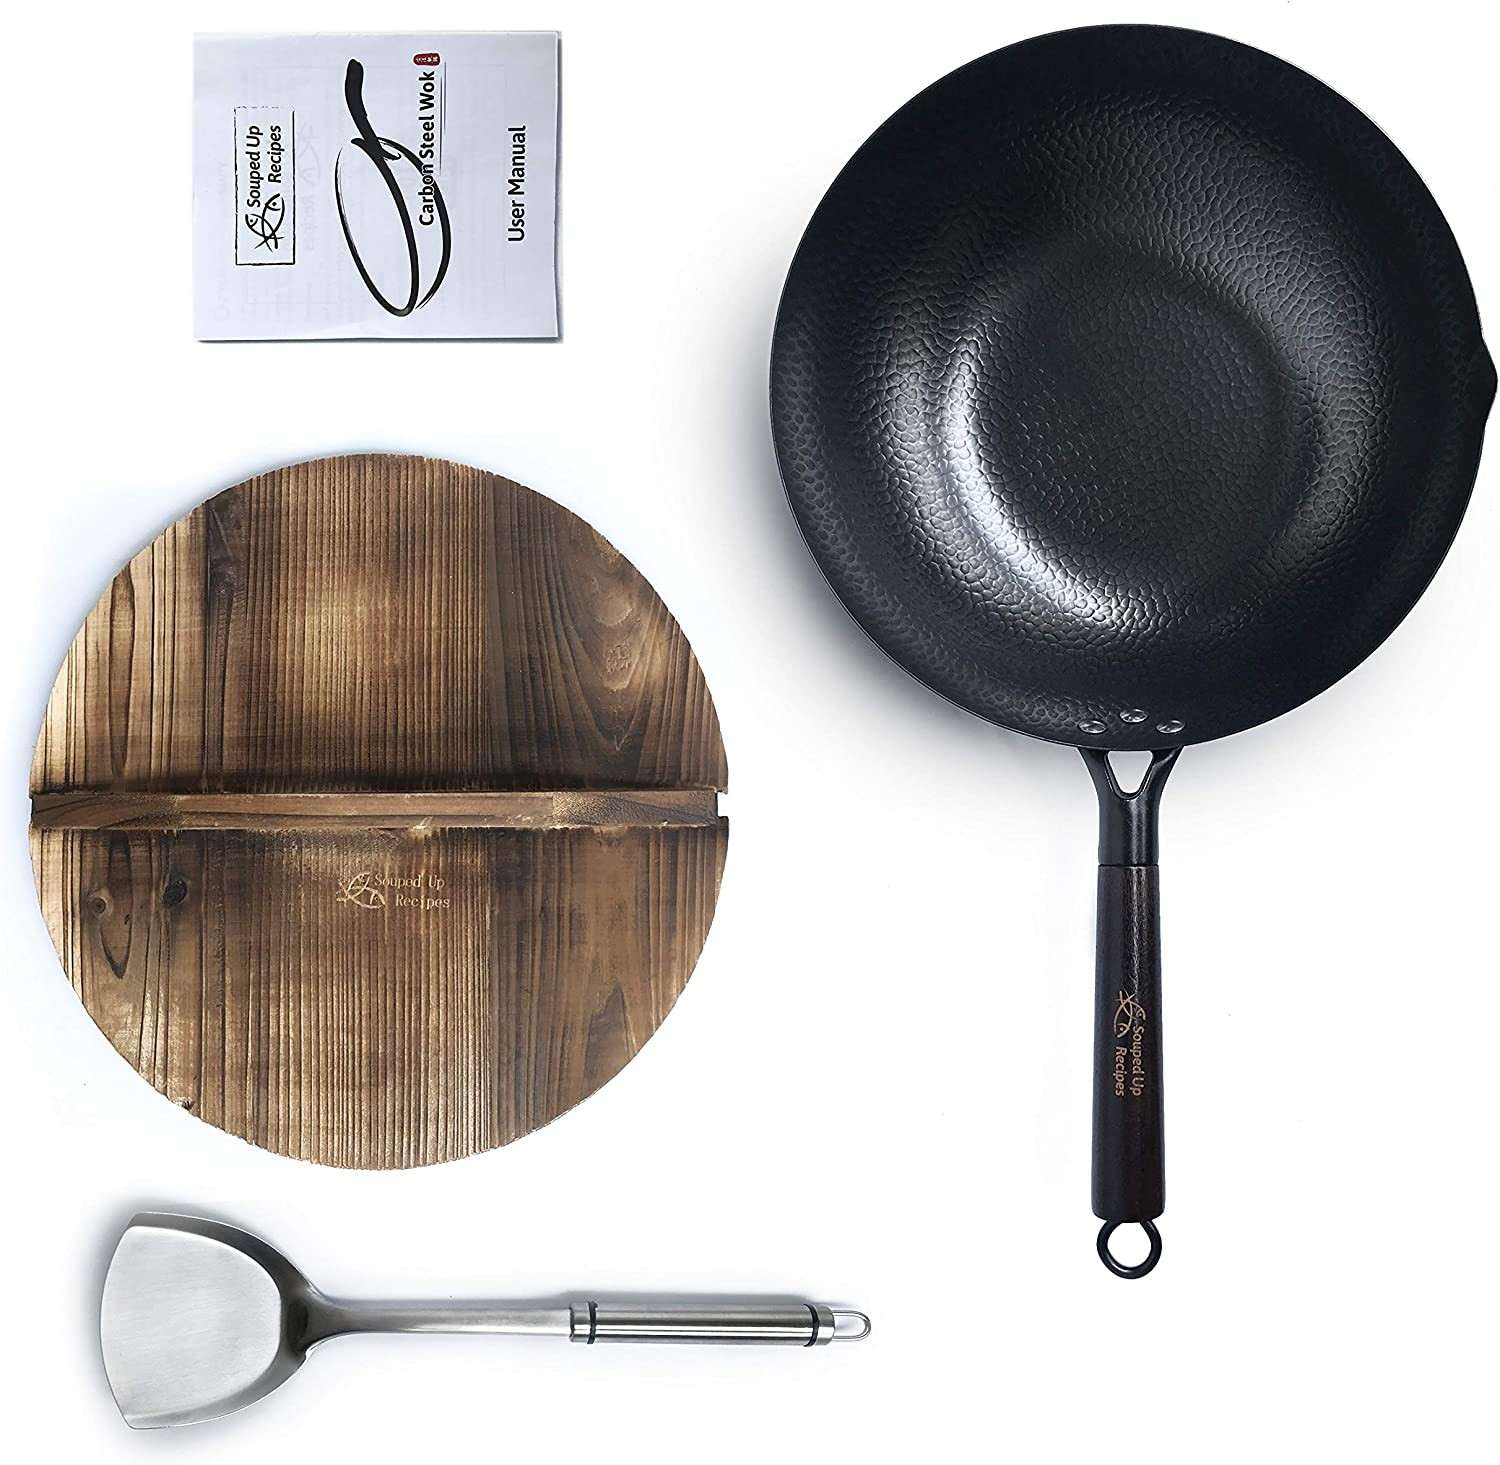 Carbon Steel Wok by Souped Up Recipes